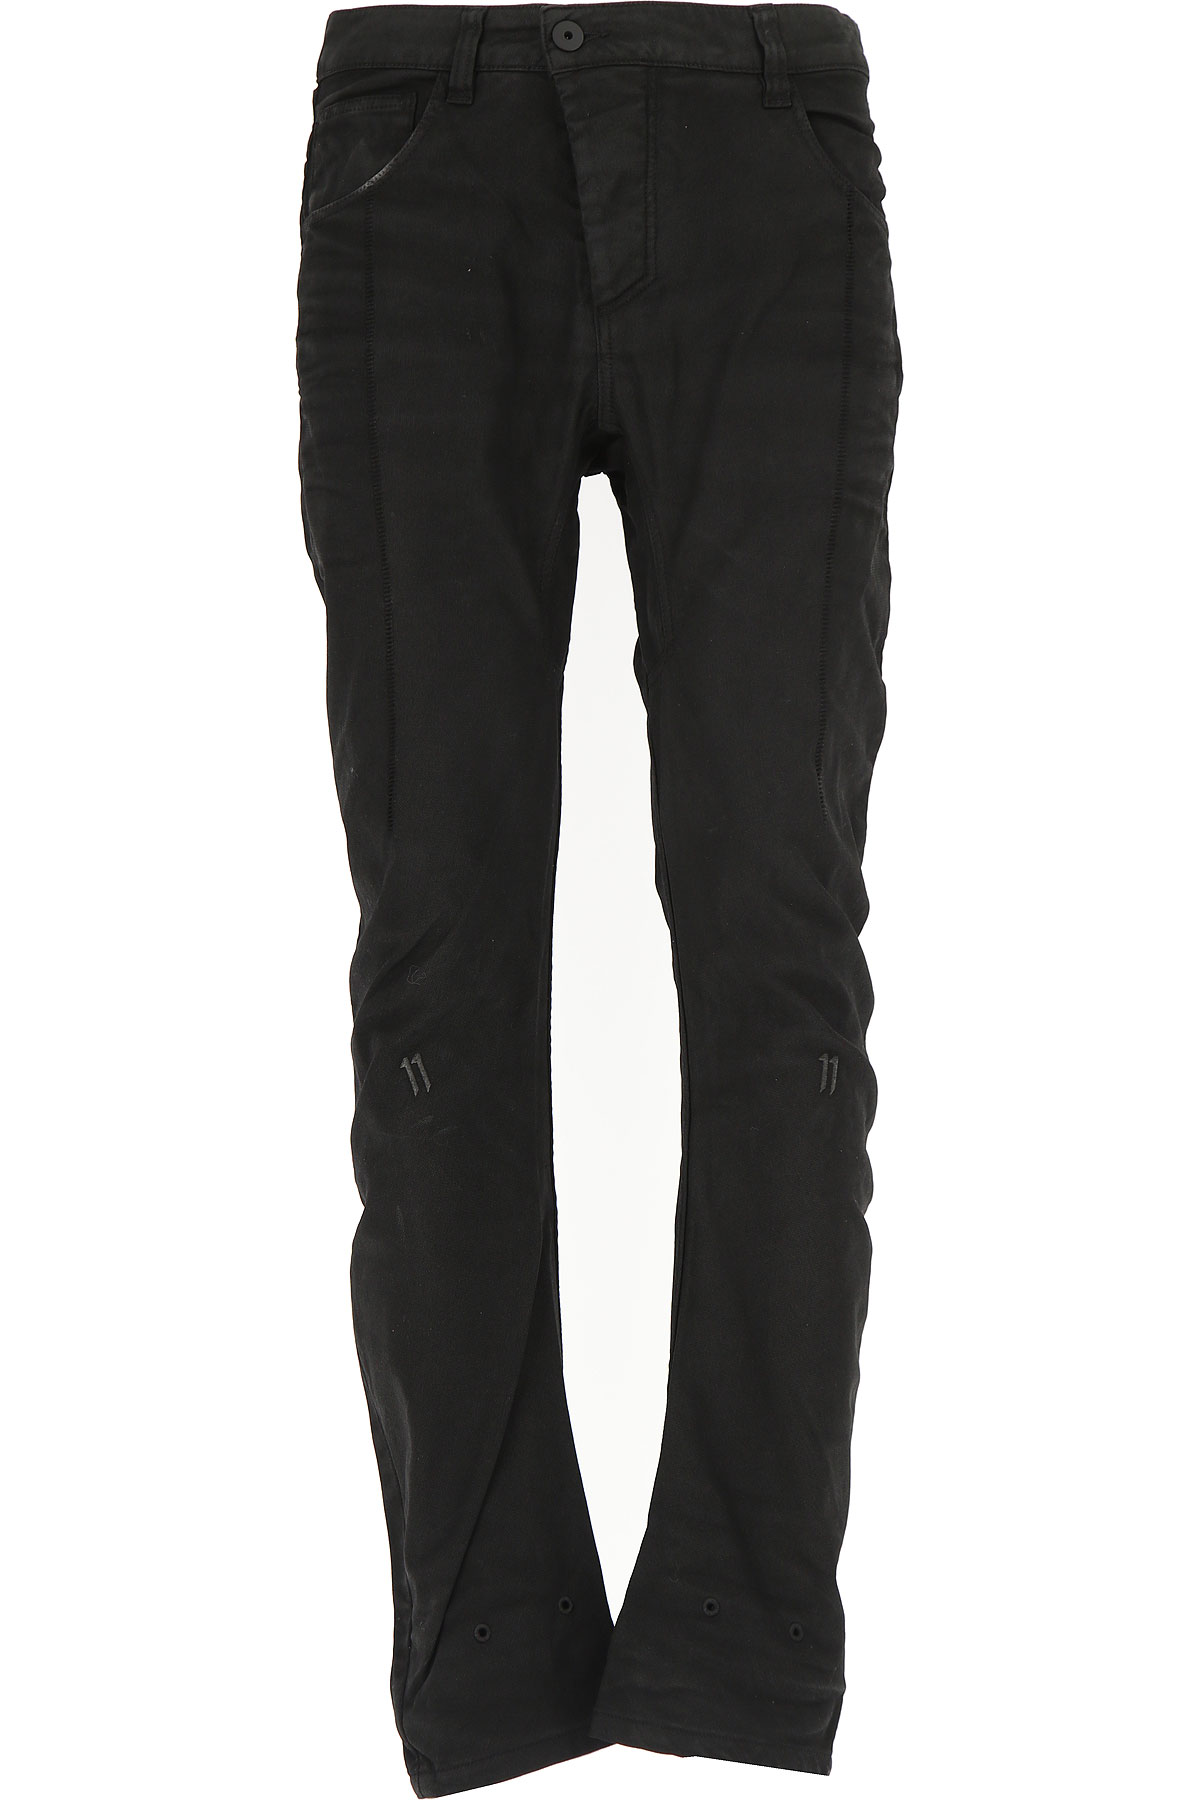 11 BY BORIS BIDJAN SABERI Jeans On Sale, Black, Cotton, 2017, 32 34